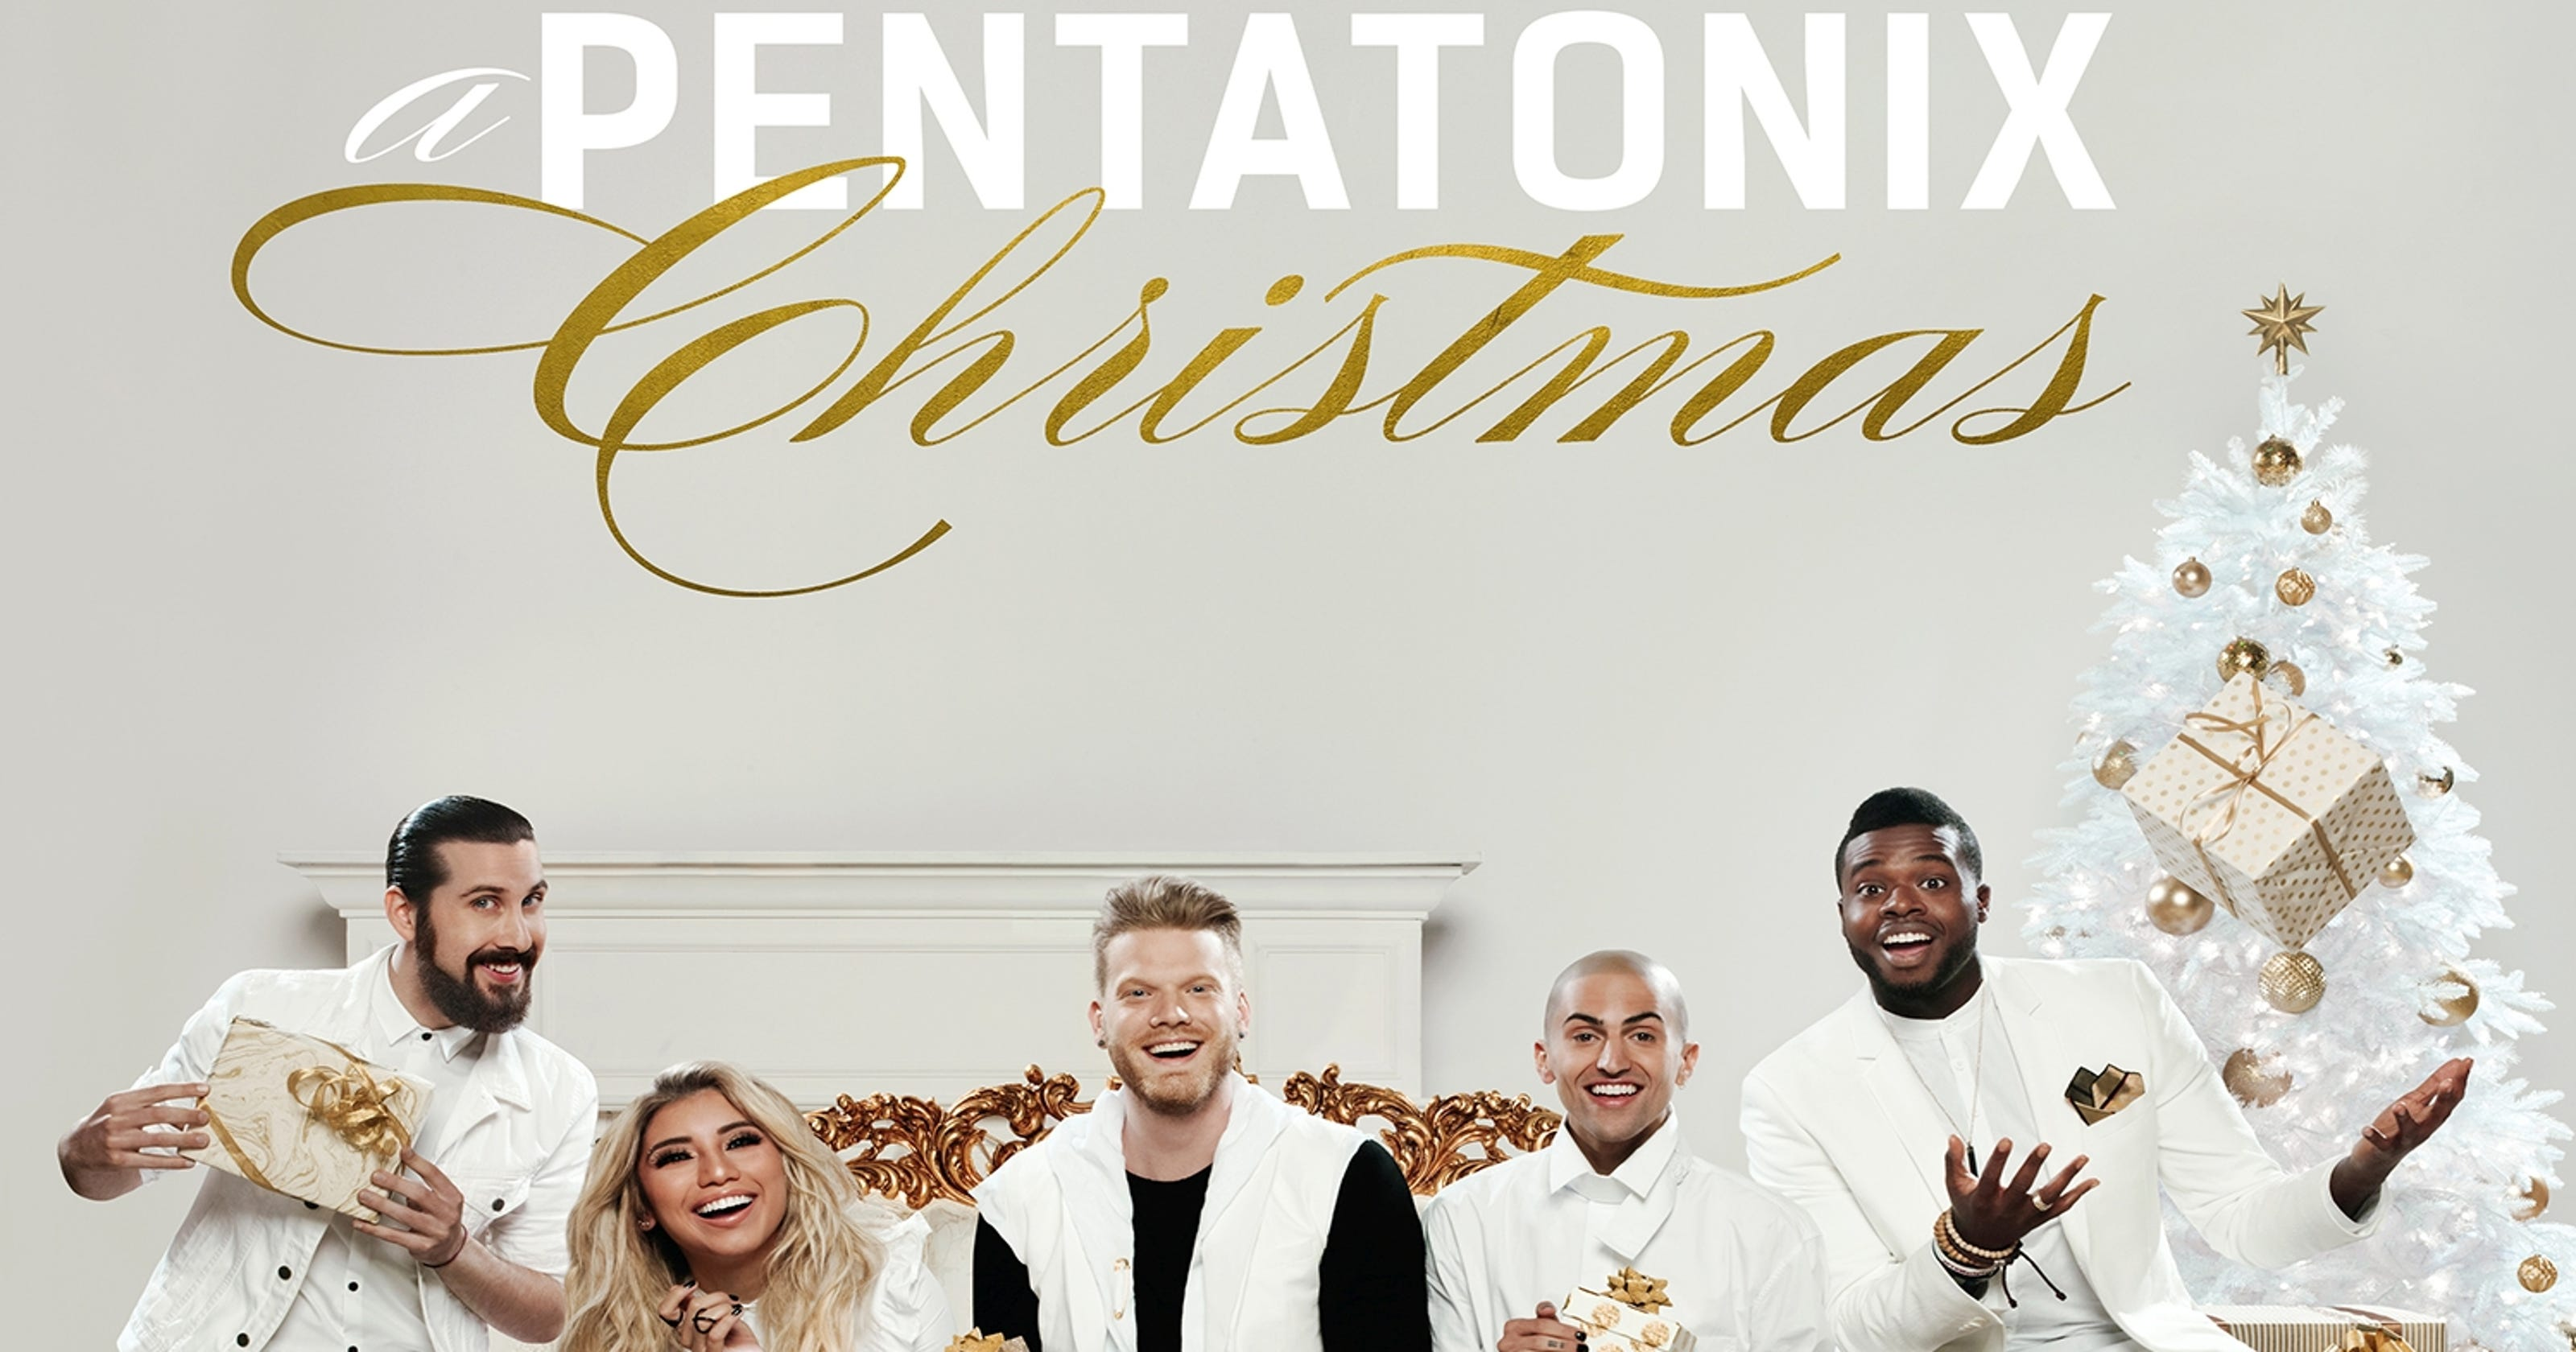 A Pentatonix Christmas\' delivers holiday harmony